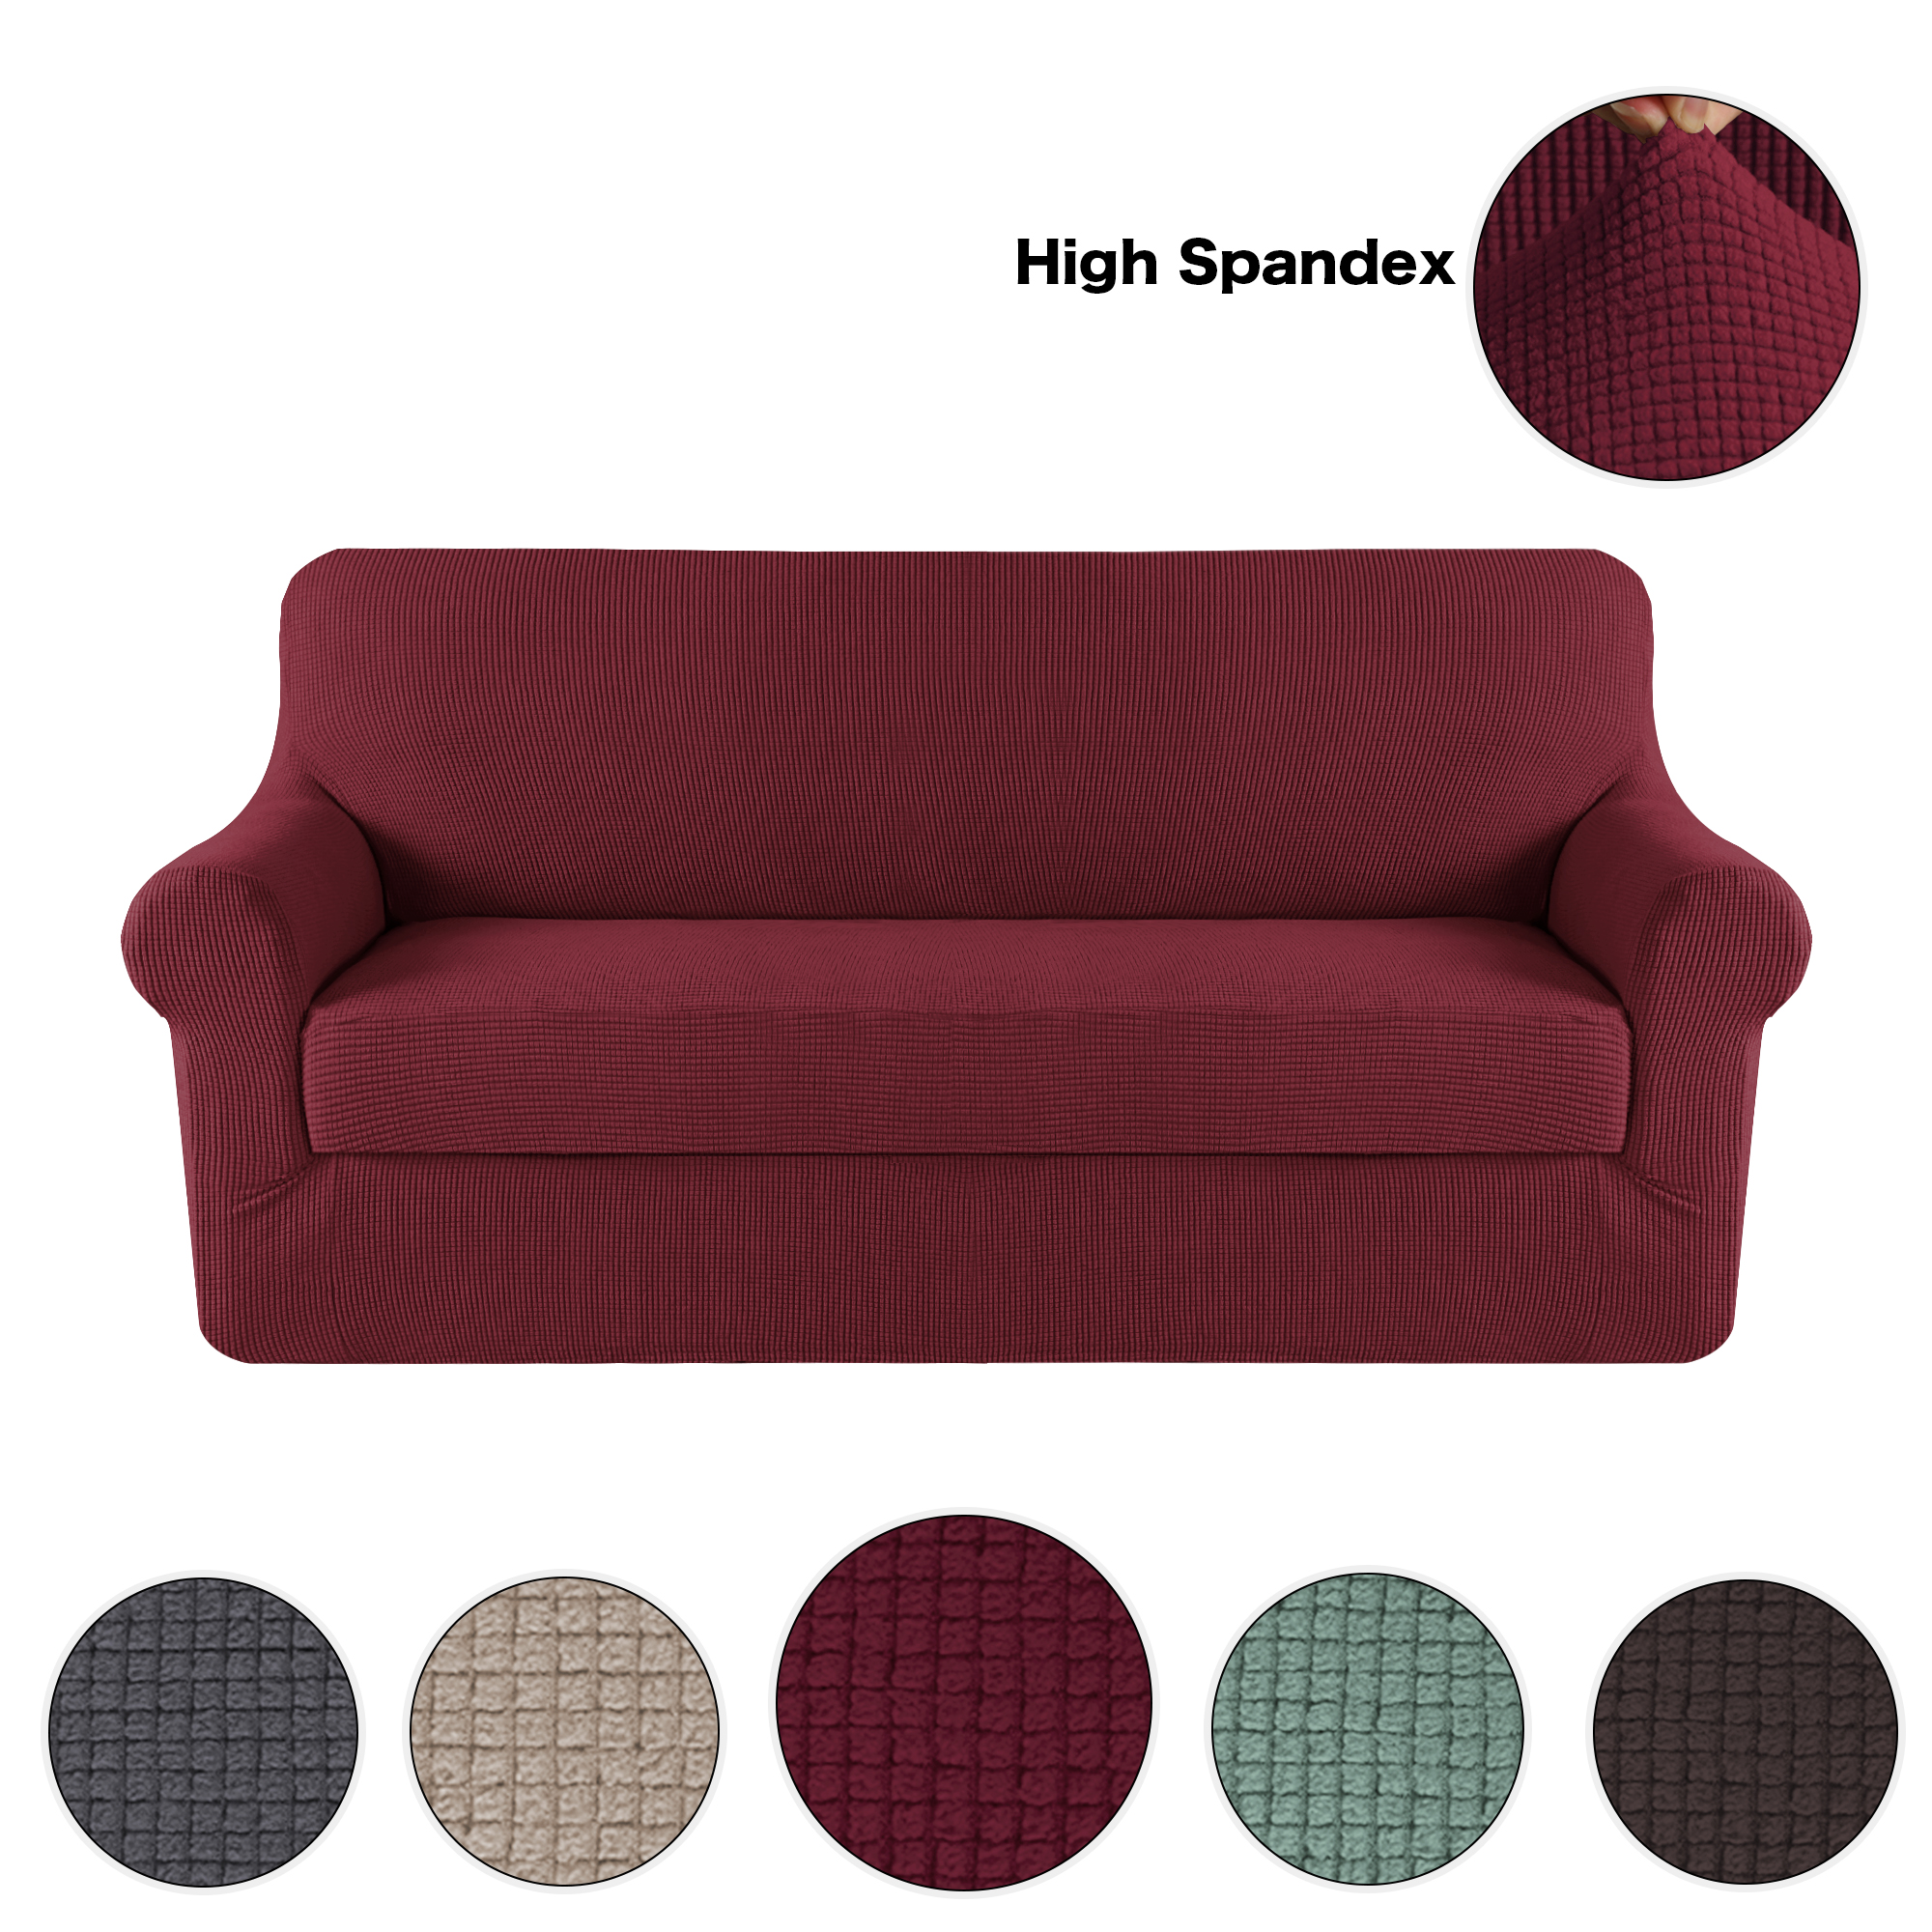 Stretch Sofa Covers For 3 Seat Couch Slipcover Knit Spandex Stretch